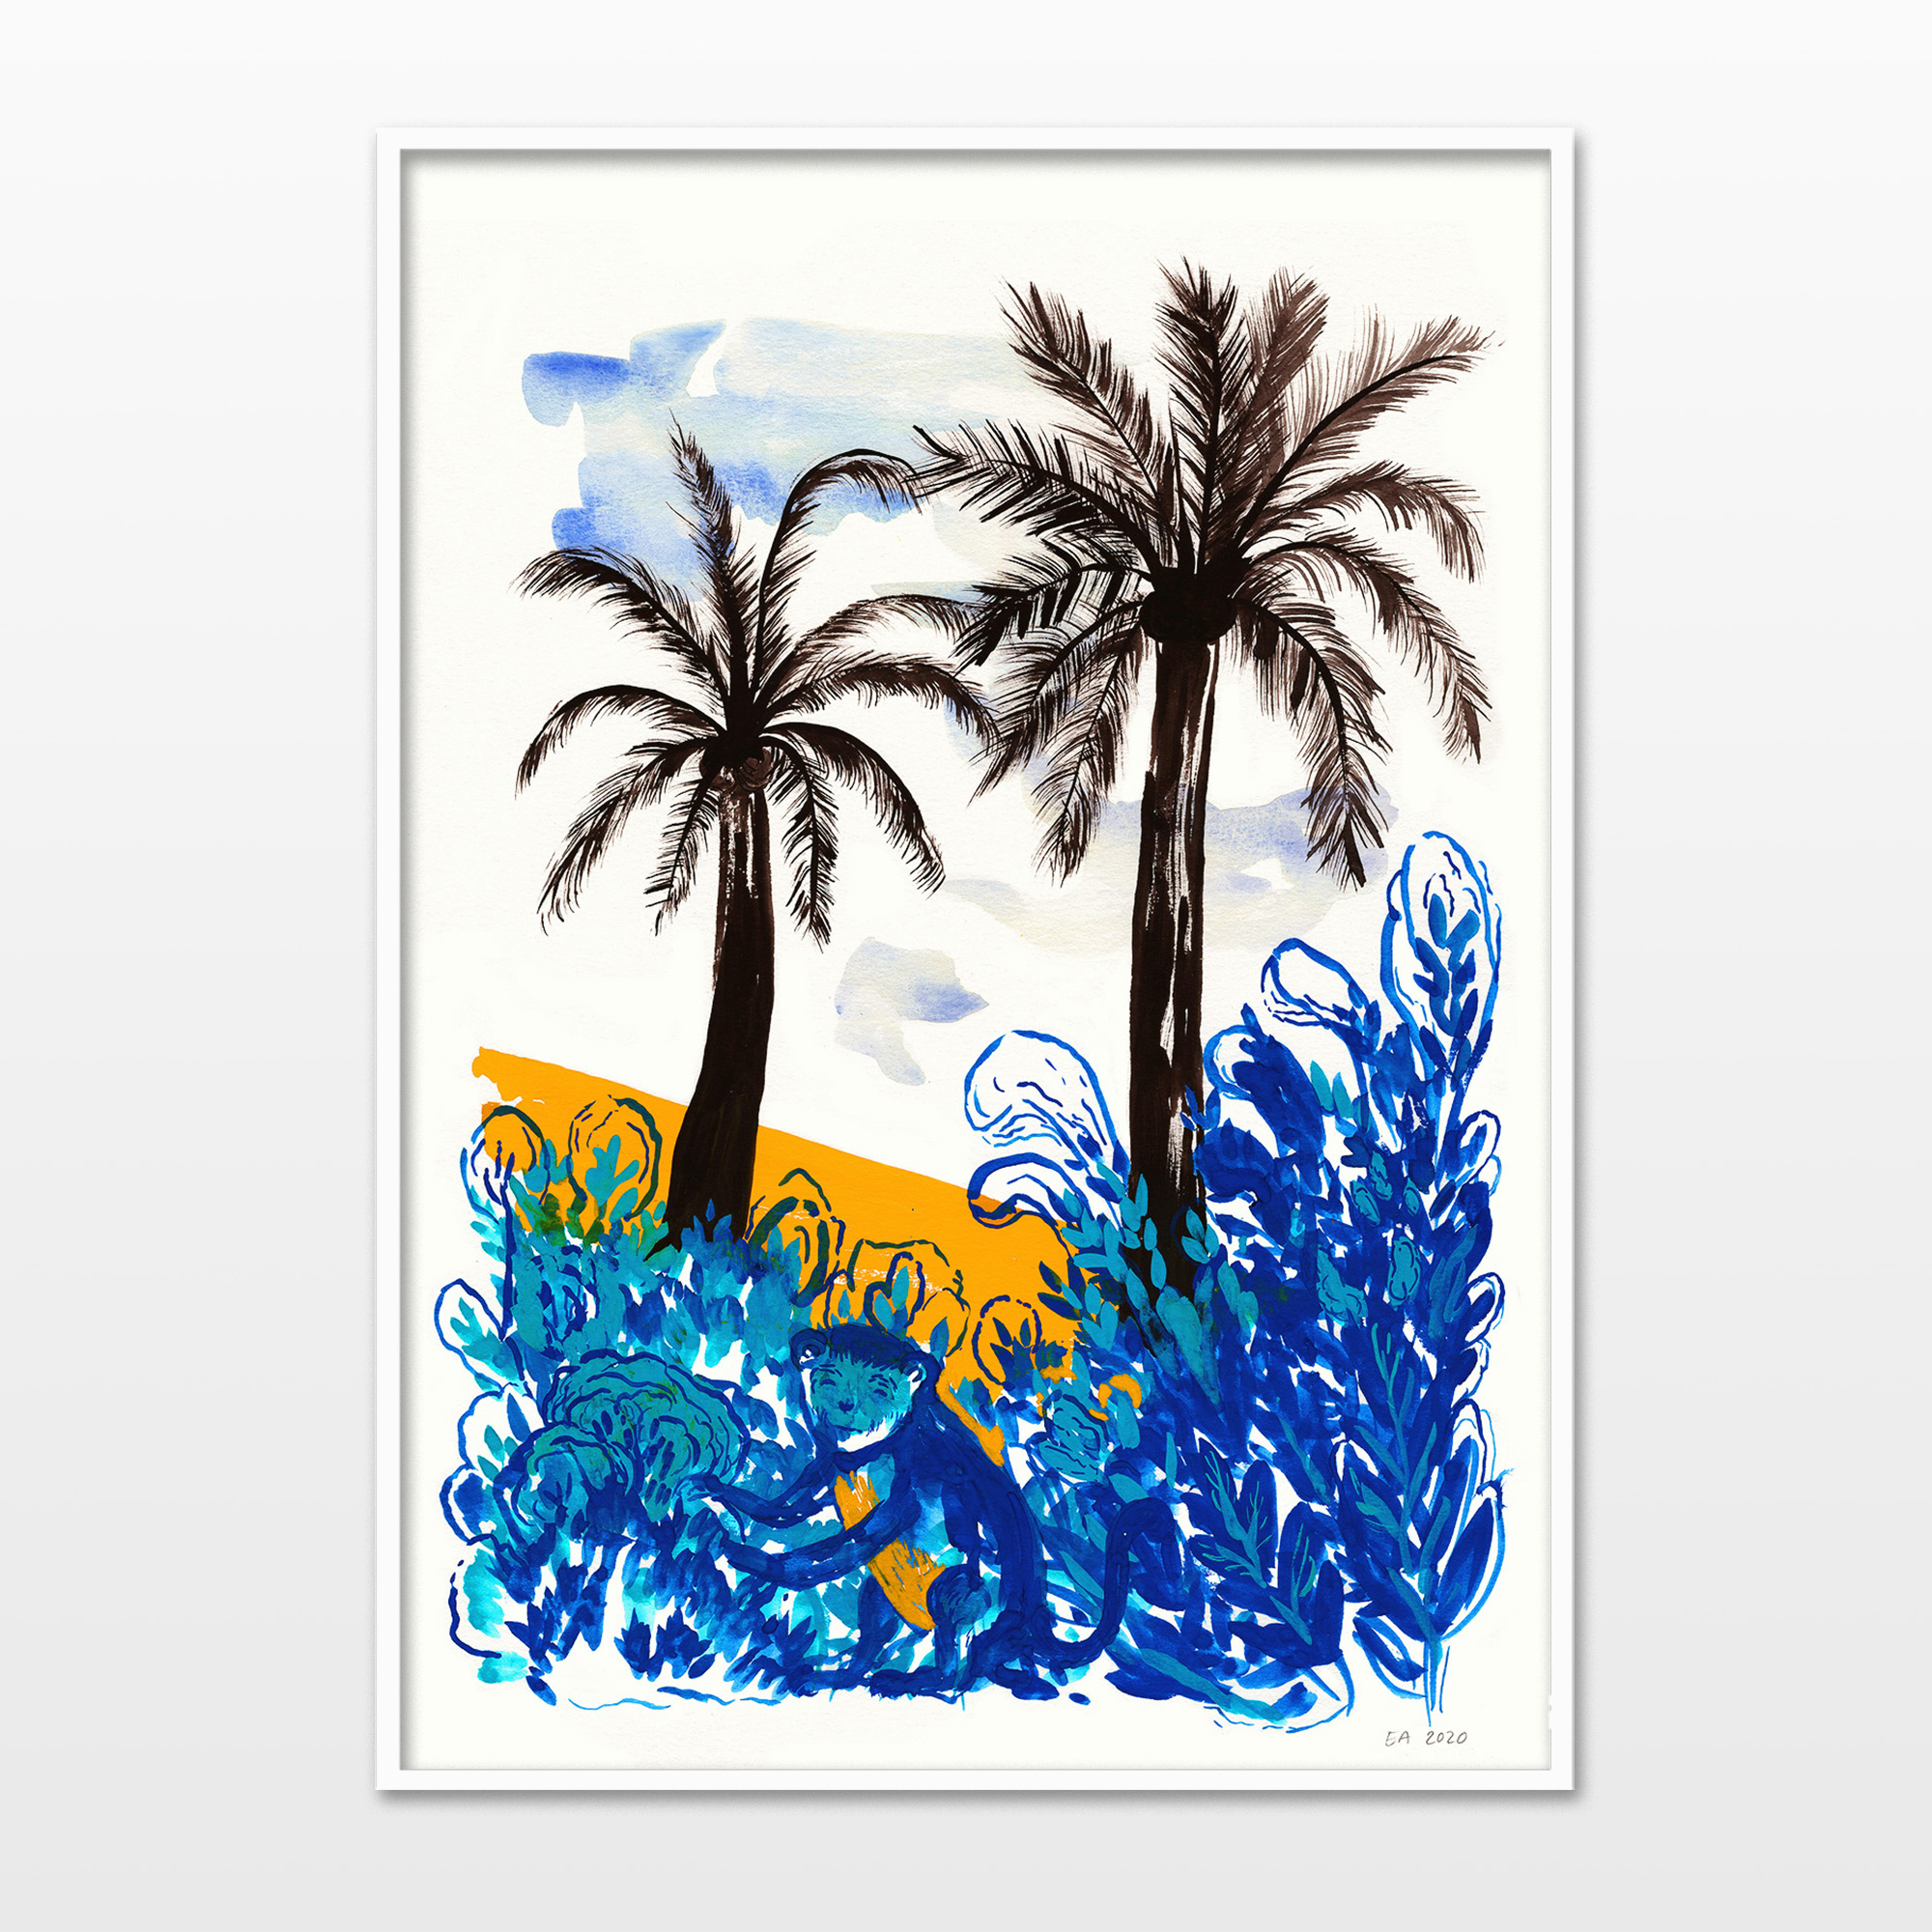 drawings, watercolor-paintings, aesthetic, colorful, family-friendly, figurative, illustrative, landscape, animals, botany, children, nature, wildlife, black, blue, orange, ink, paper, watercolor, beautiful, contemporary-art, danish, decorative, design, interior, interior-design, modern, modern-art, nordic, plants, posters, pretty, scandinavien, Buy original high quality art. Paintings, drawings, limited edition prints & posters by talented artists.